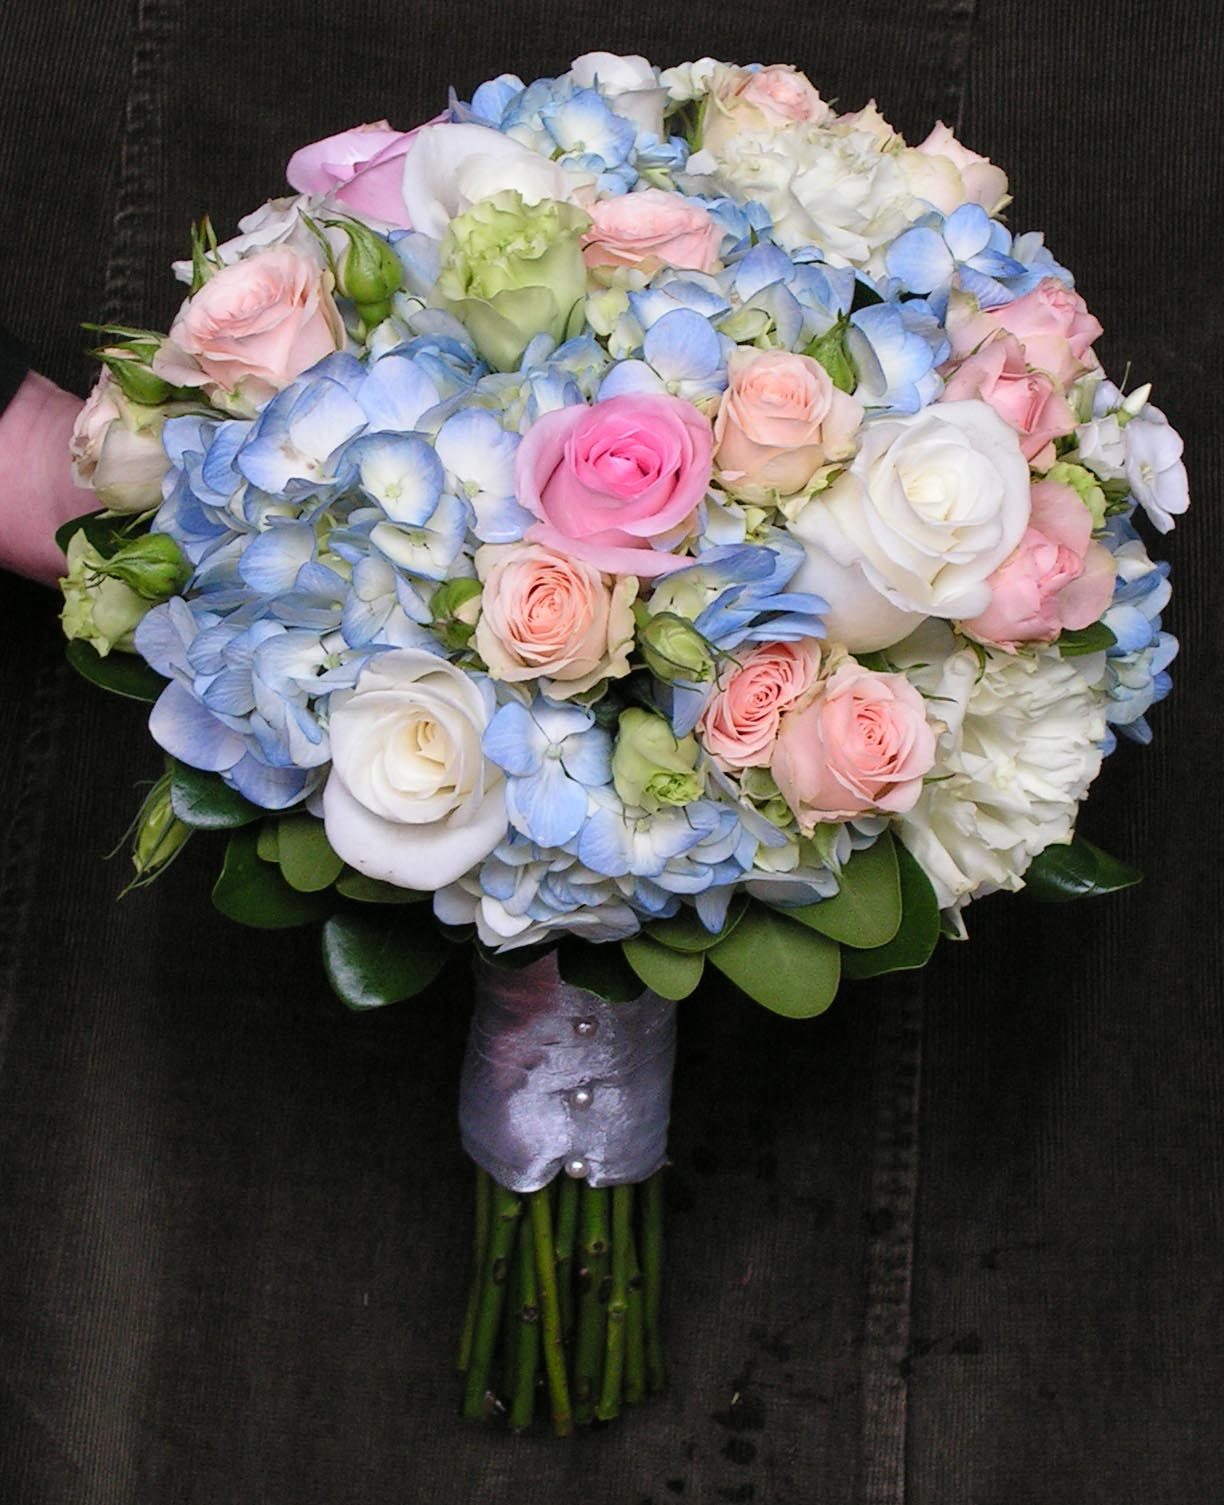 pale blue and pink hydrange rose wedding flower bridal party bouquet. Black Bedroom Furniture Sets. Home Design Ideas